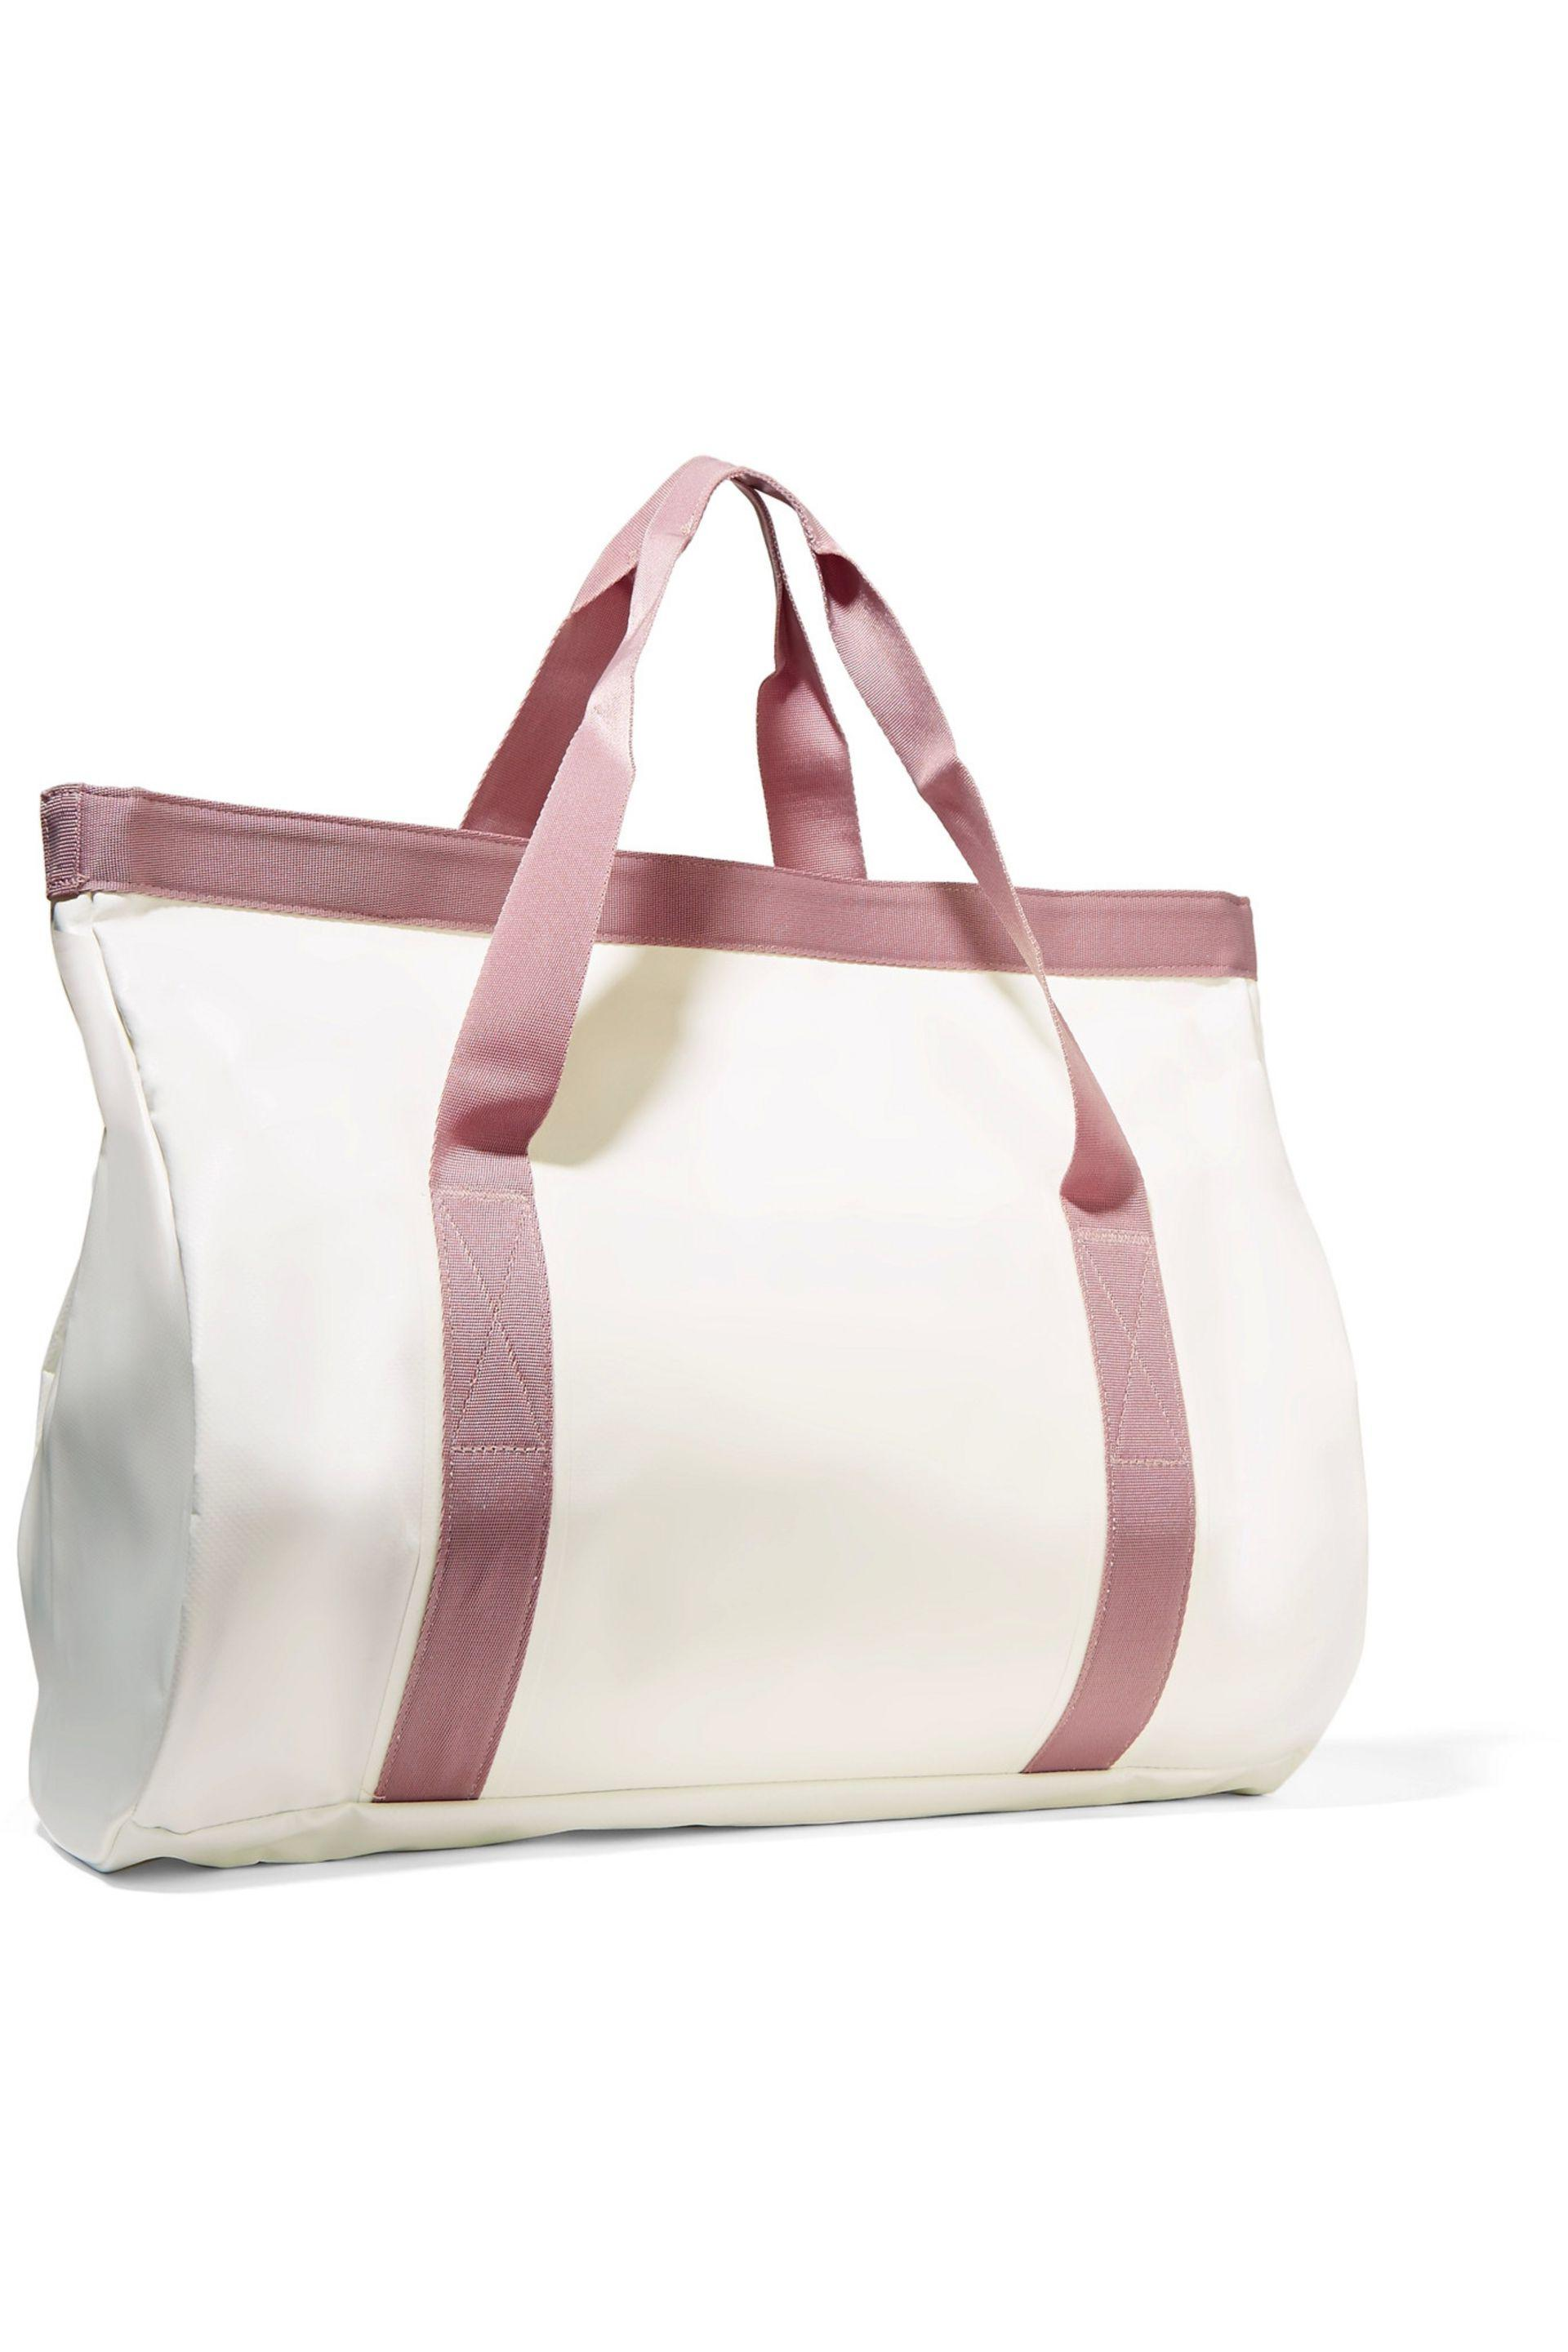 adidas By Stella McCartney Canvas-trimmed Coated-pvc Swim Tote in White